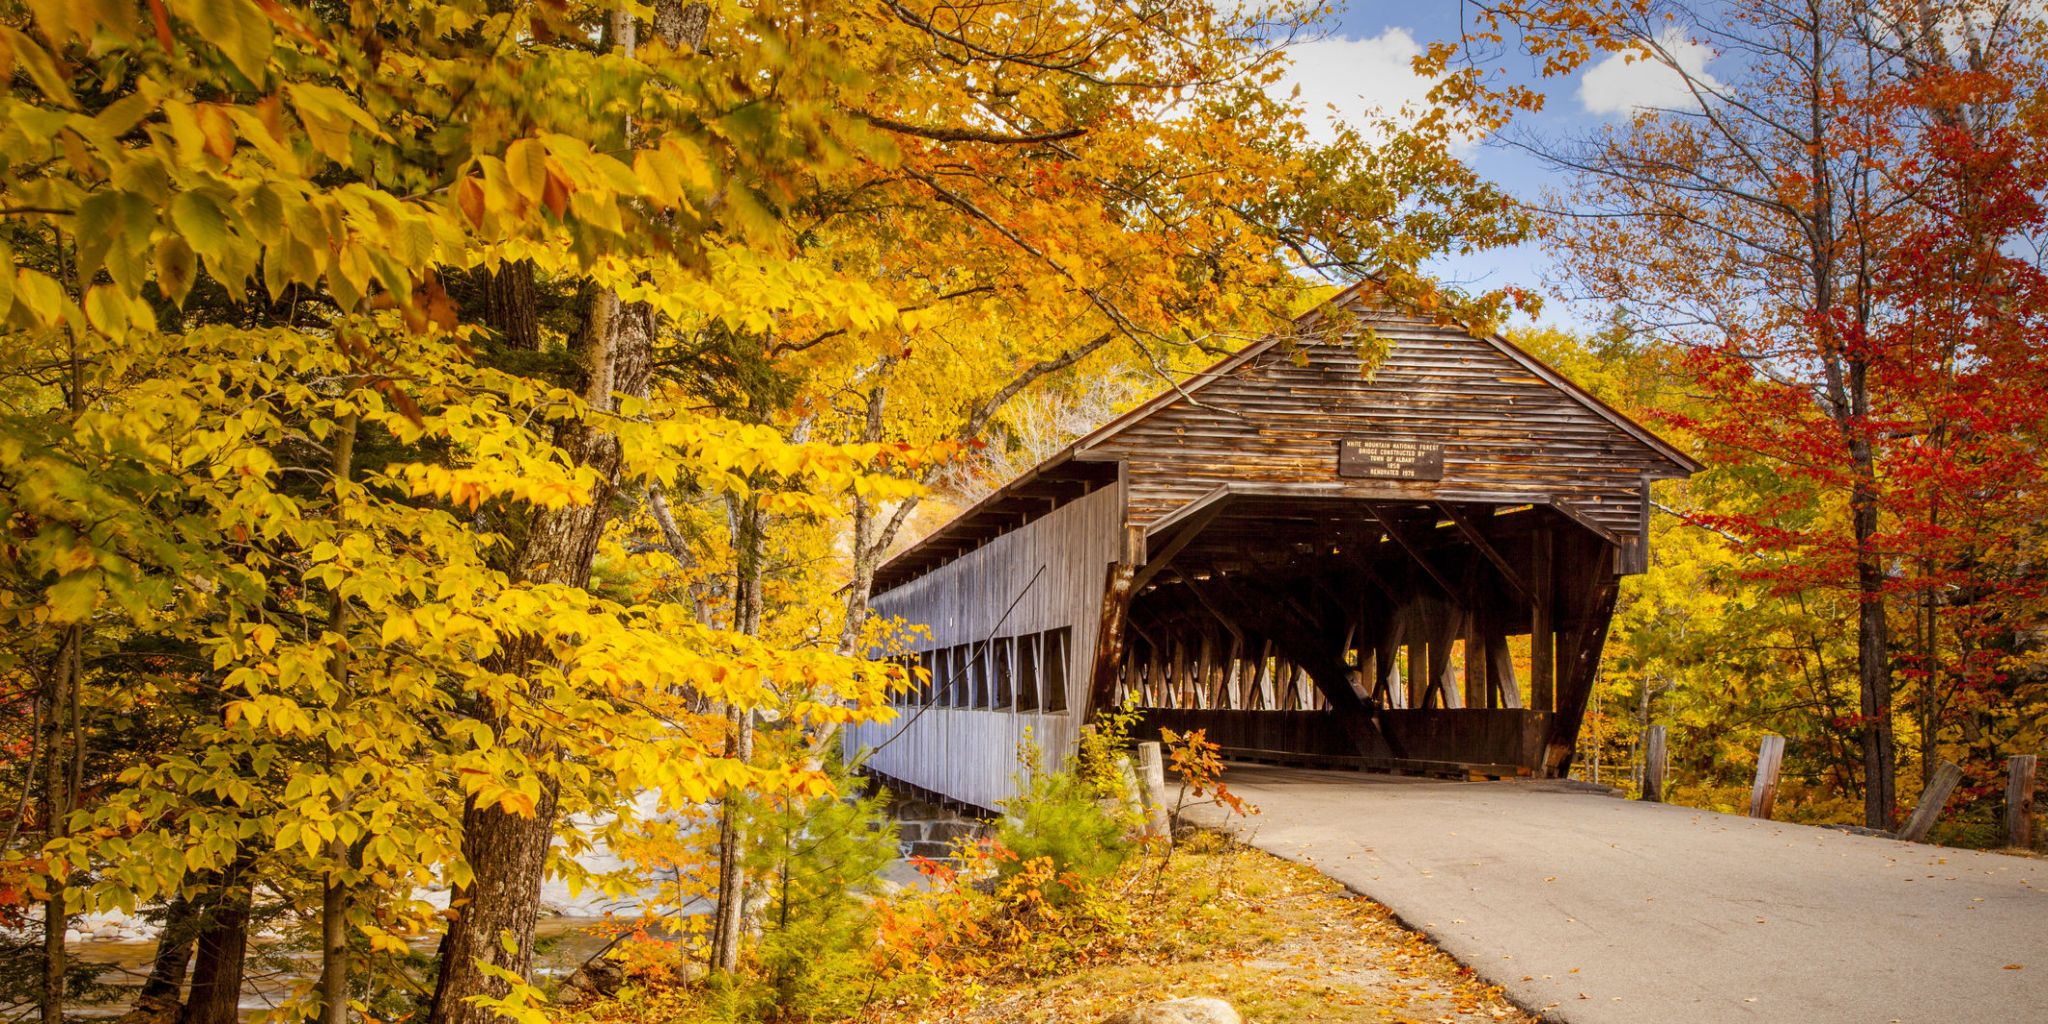 15 Small New England Towns You Need to Visit ASAP